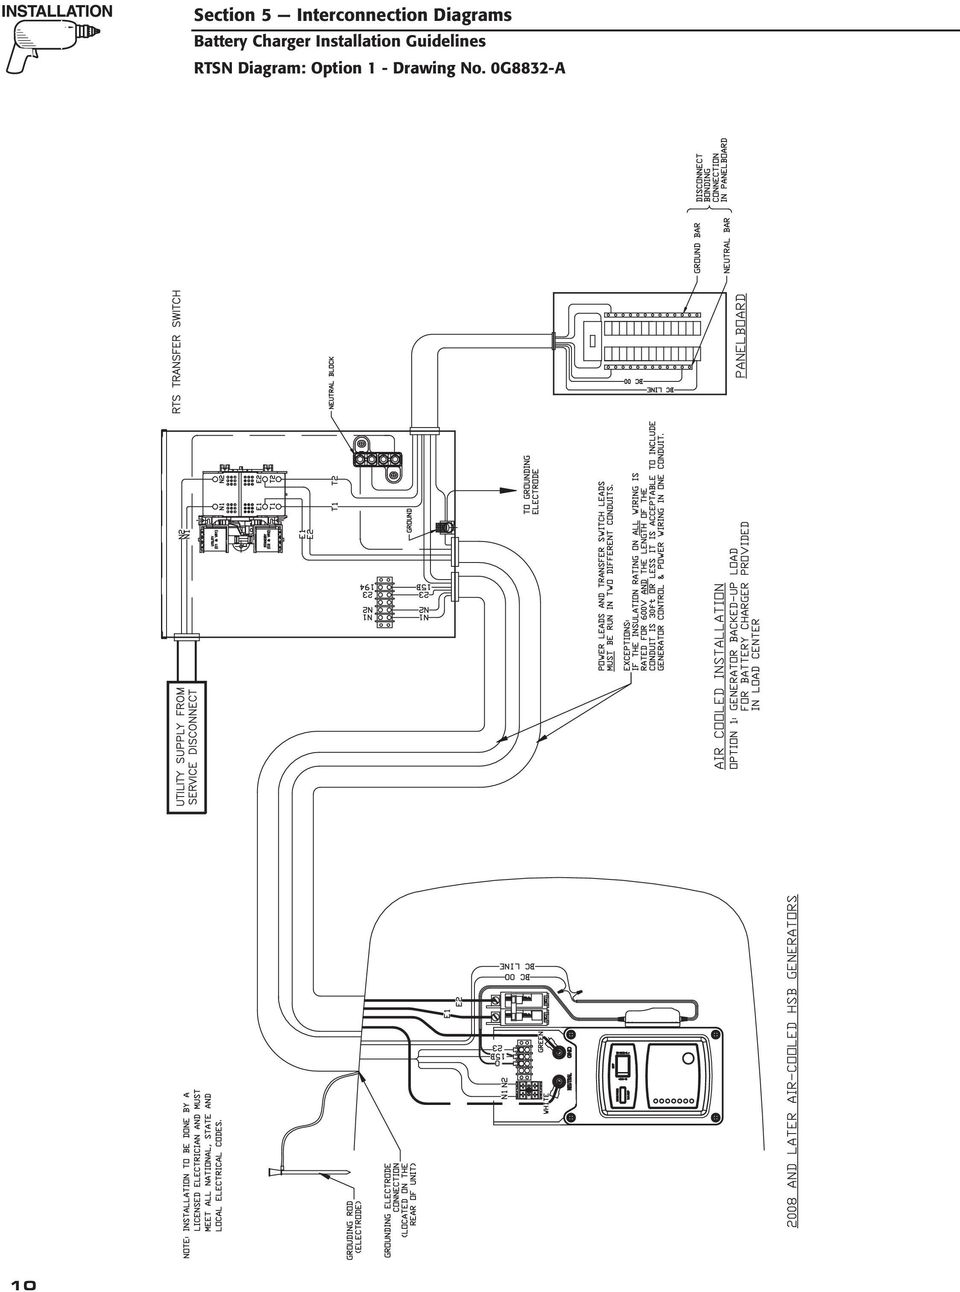 2wire GM Alternator Wiring Diagram. GM. Wiring Diagrams Instructions